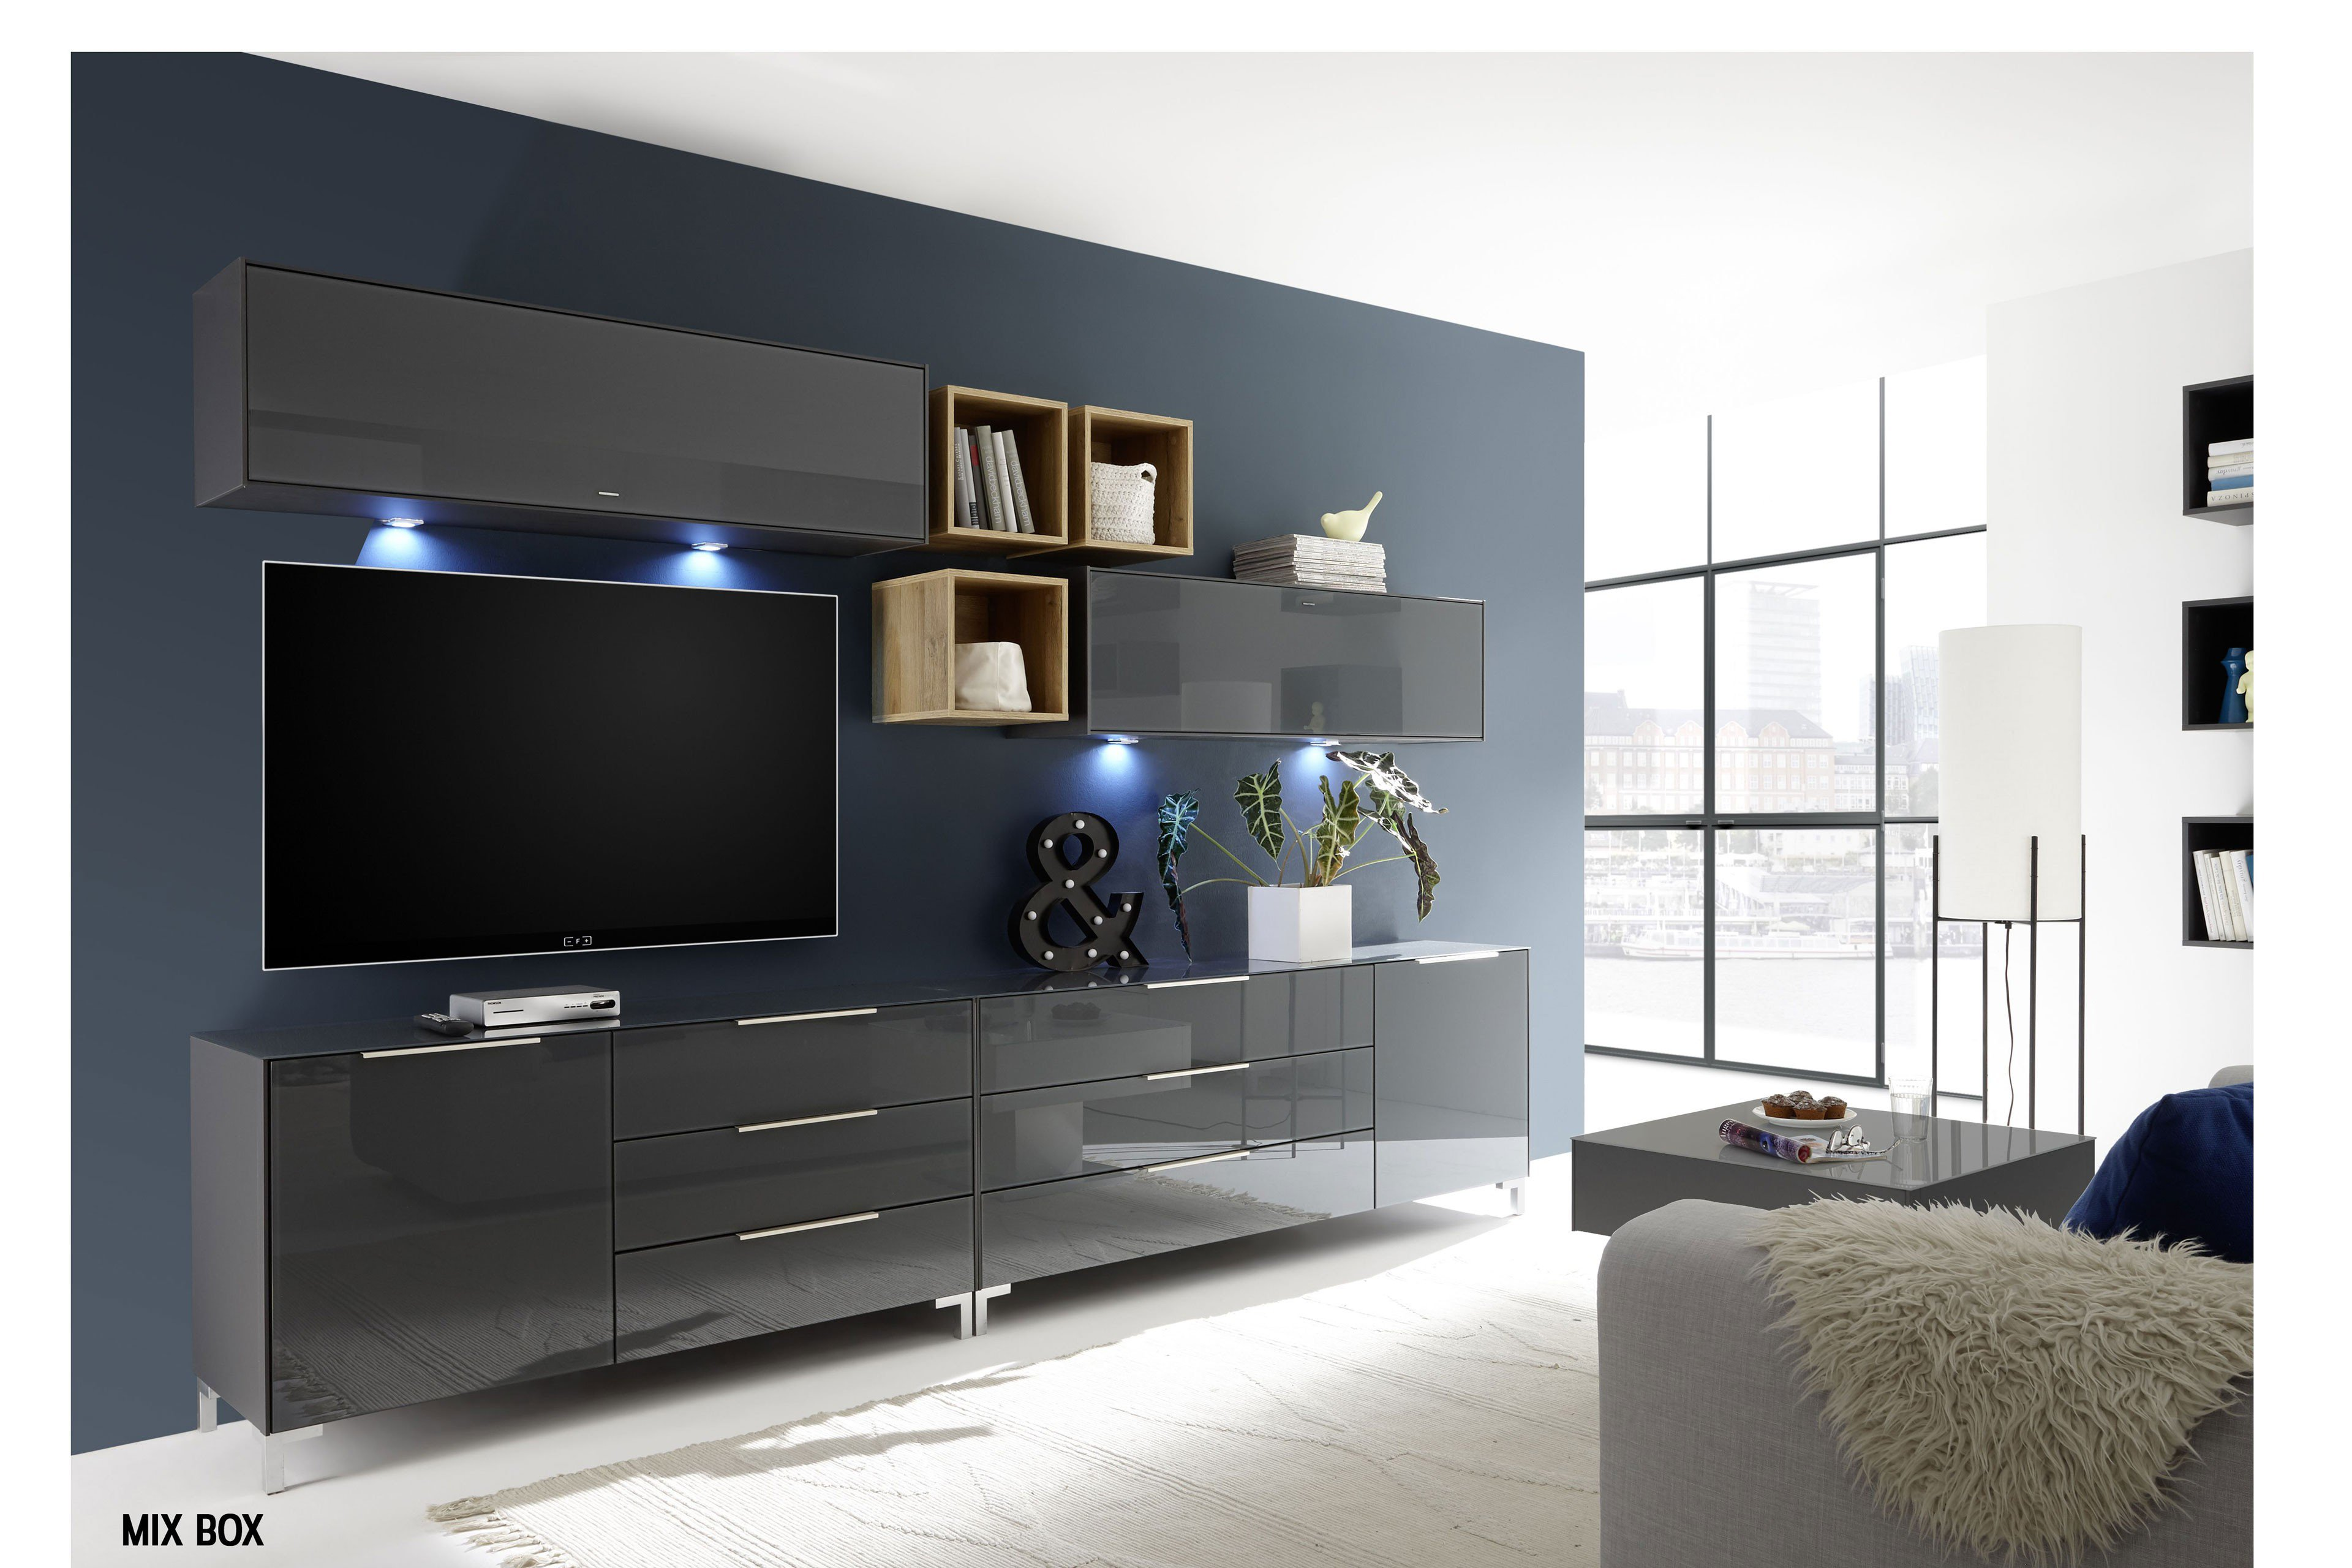 wohnwand mix box in anthrazit matt lack von m usbacher m bel letz ihr online shop. Black Bedroom Furniture Sets. Home Design Ideas